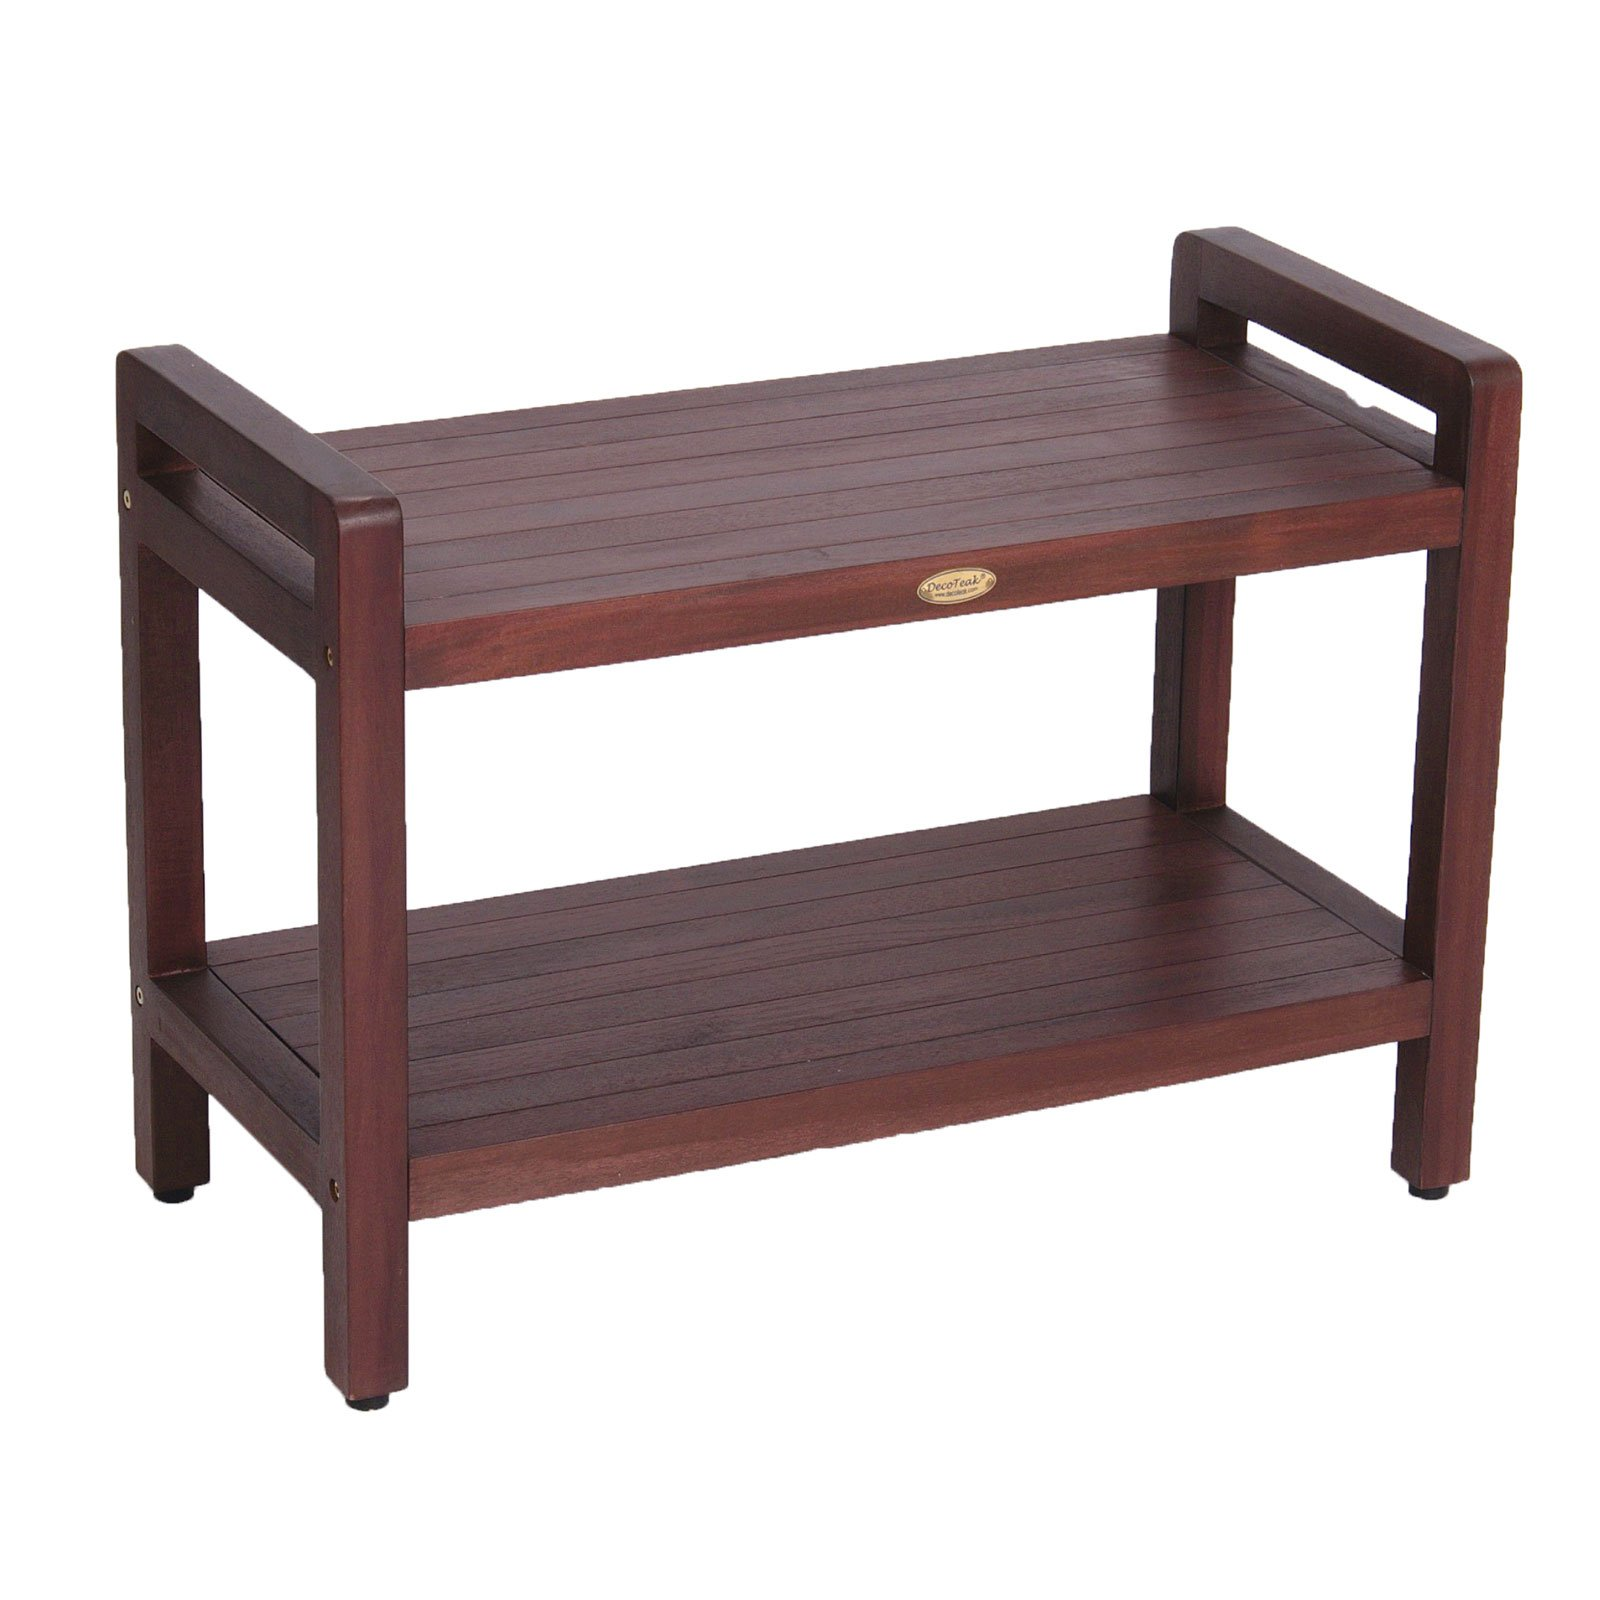 29'' Teak Shower Bench with Shelf and LIftAide Arms- Adjustable Foot Pads- Shower, Bath, Bathroom